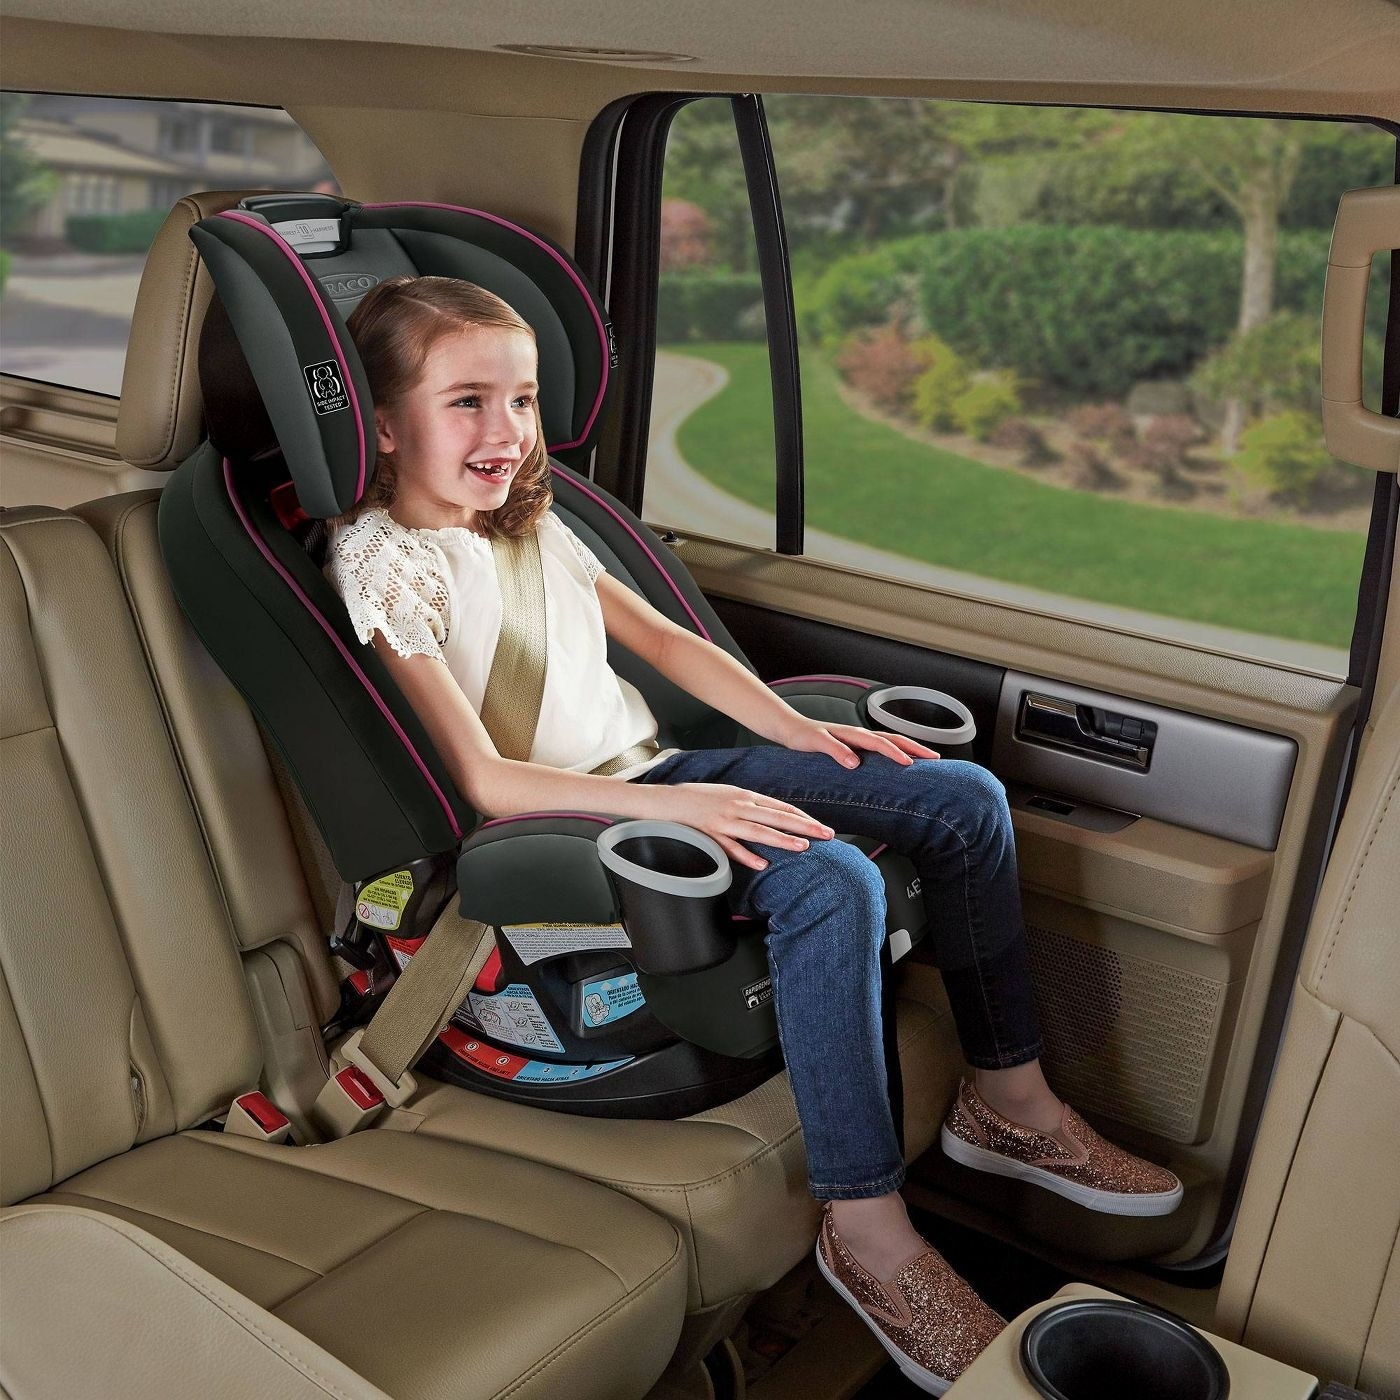 A child sitting in the car seat